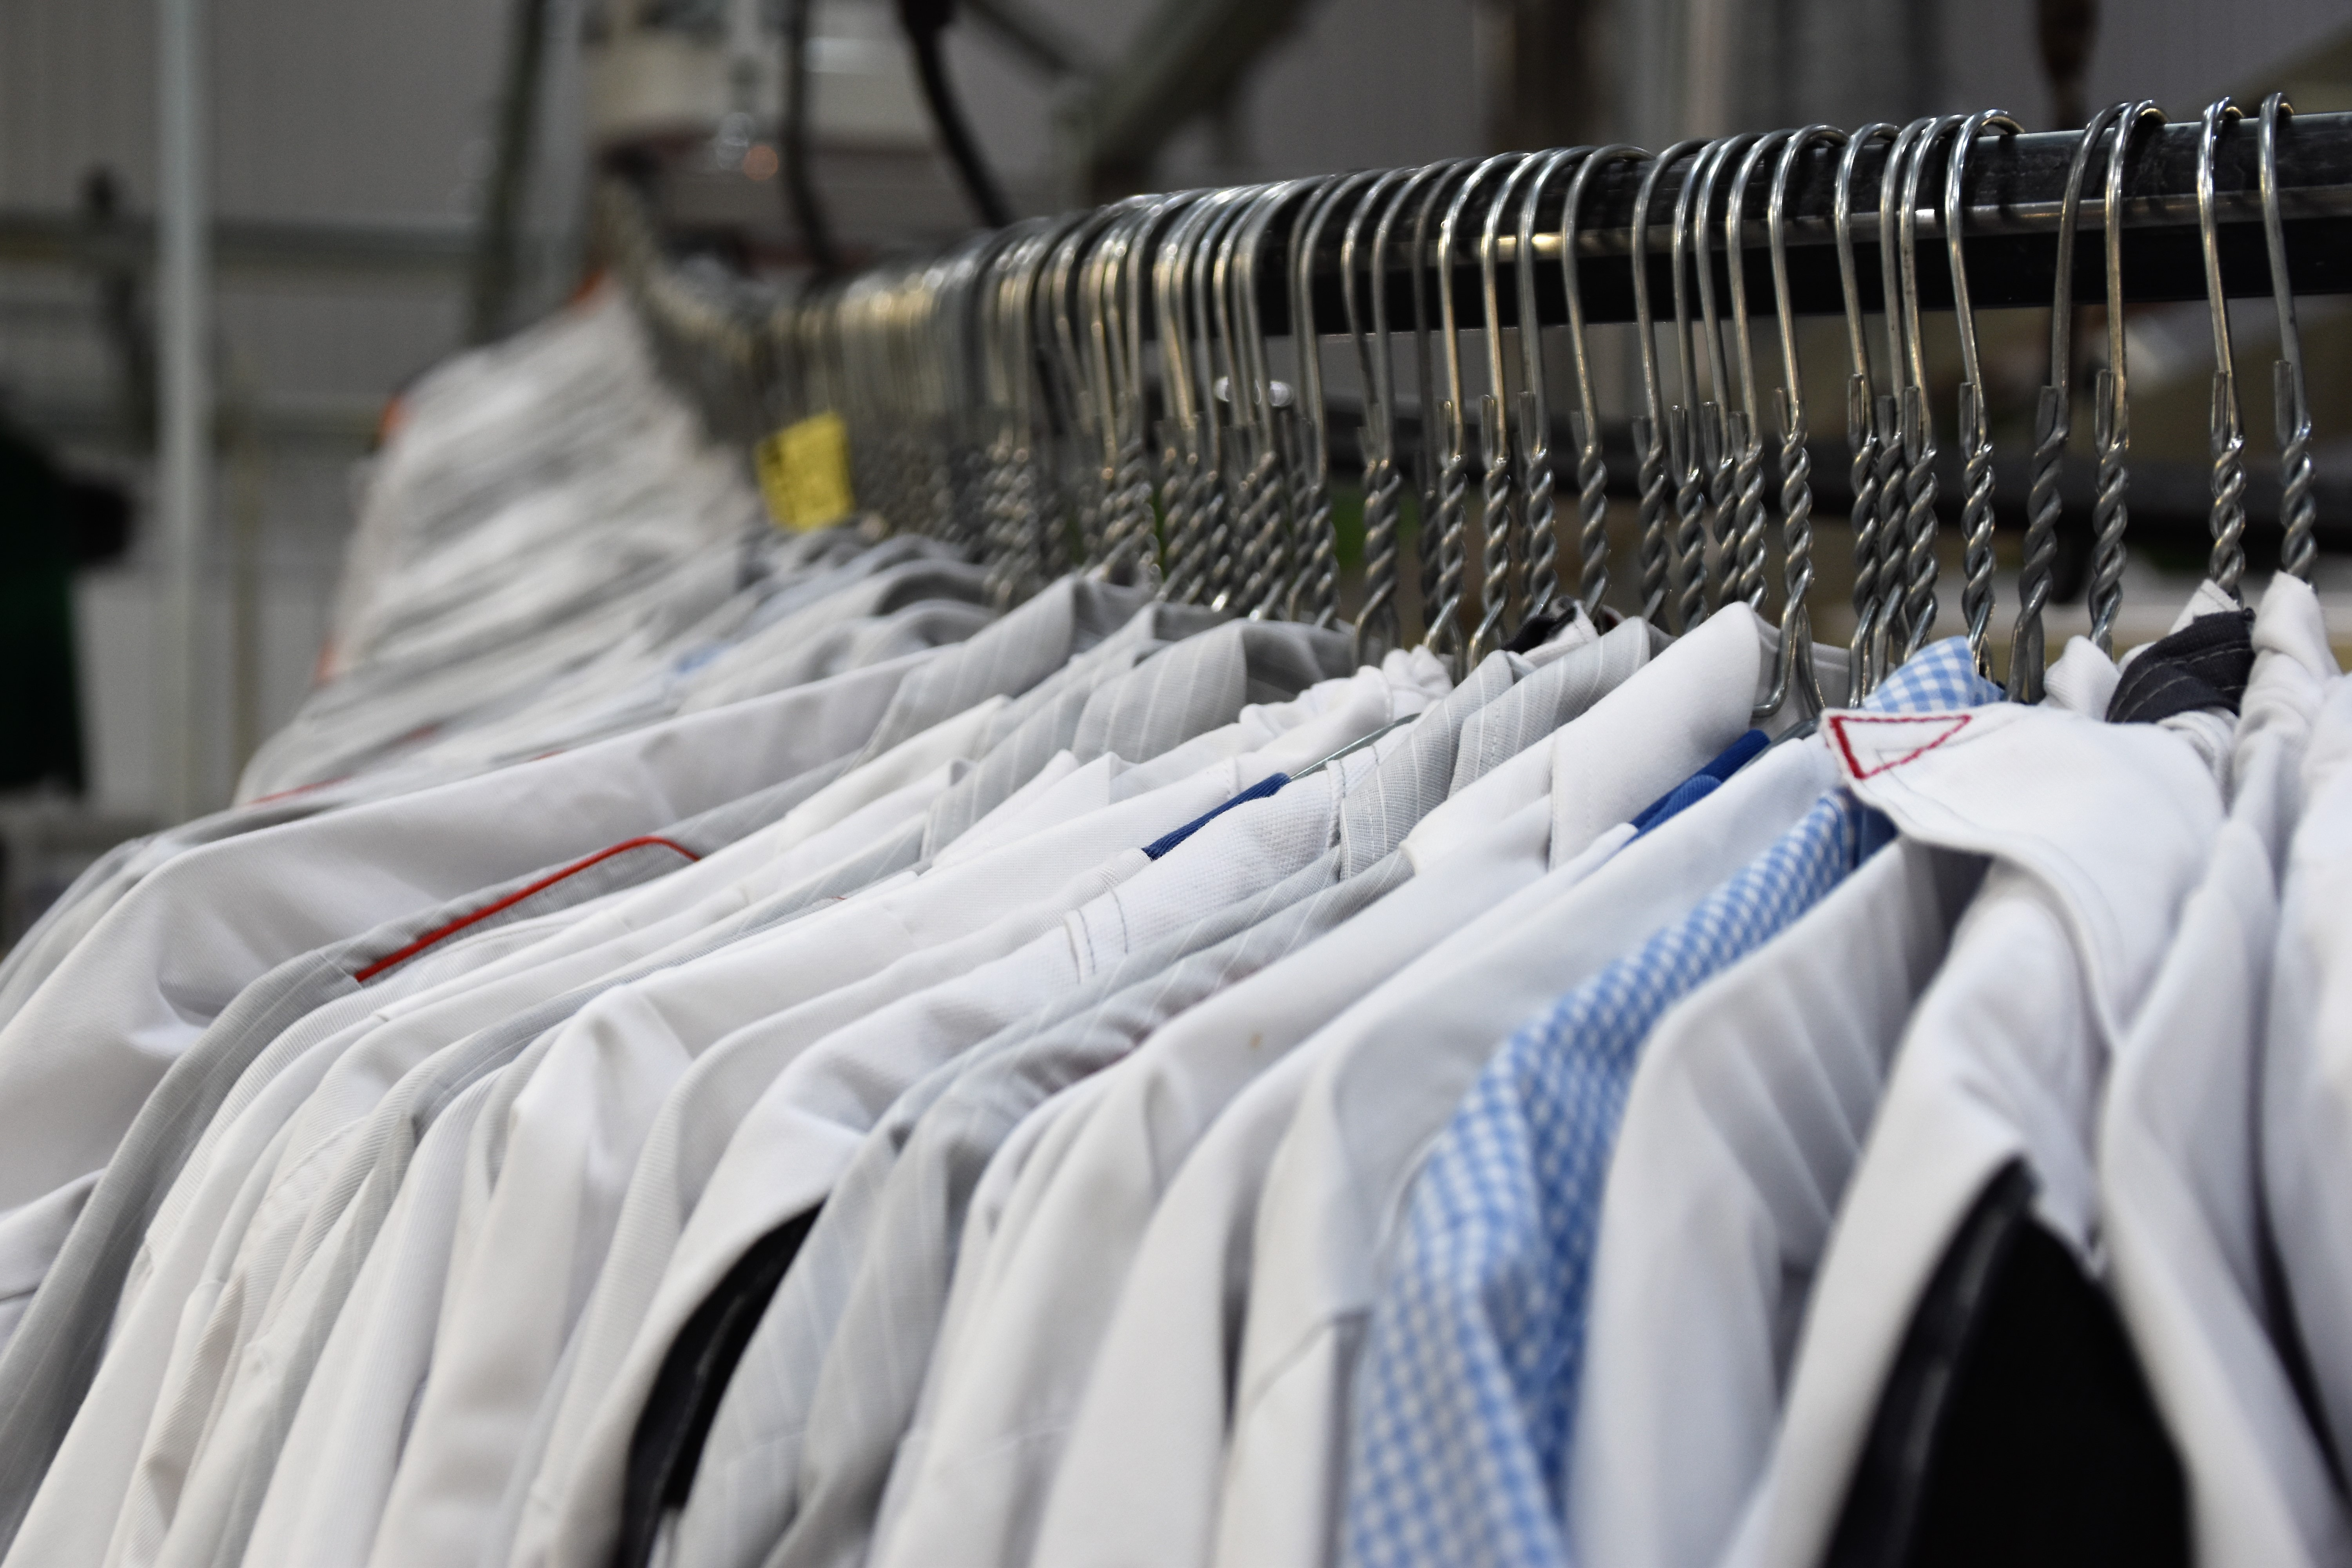 Both New York and New Jersey laws actually require dry cleaners to keep garments for up to six months, after which time they have the right to donate them to charity.